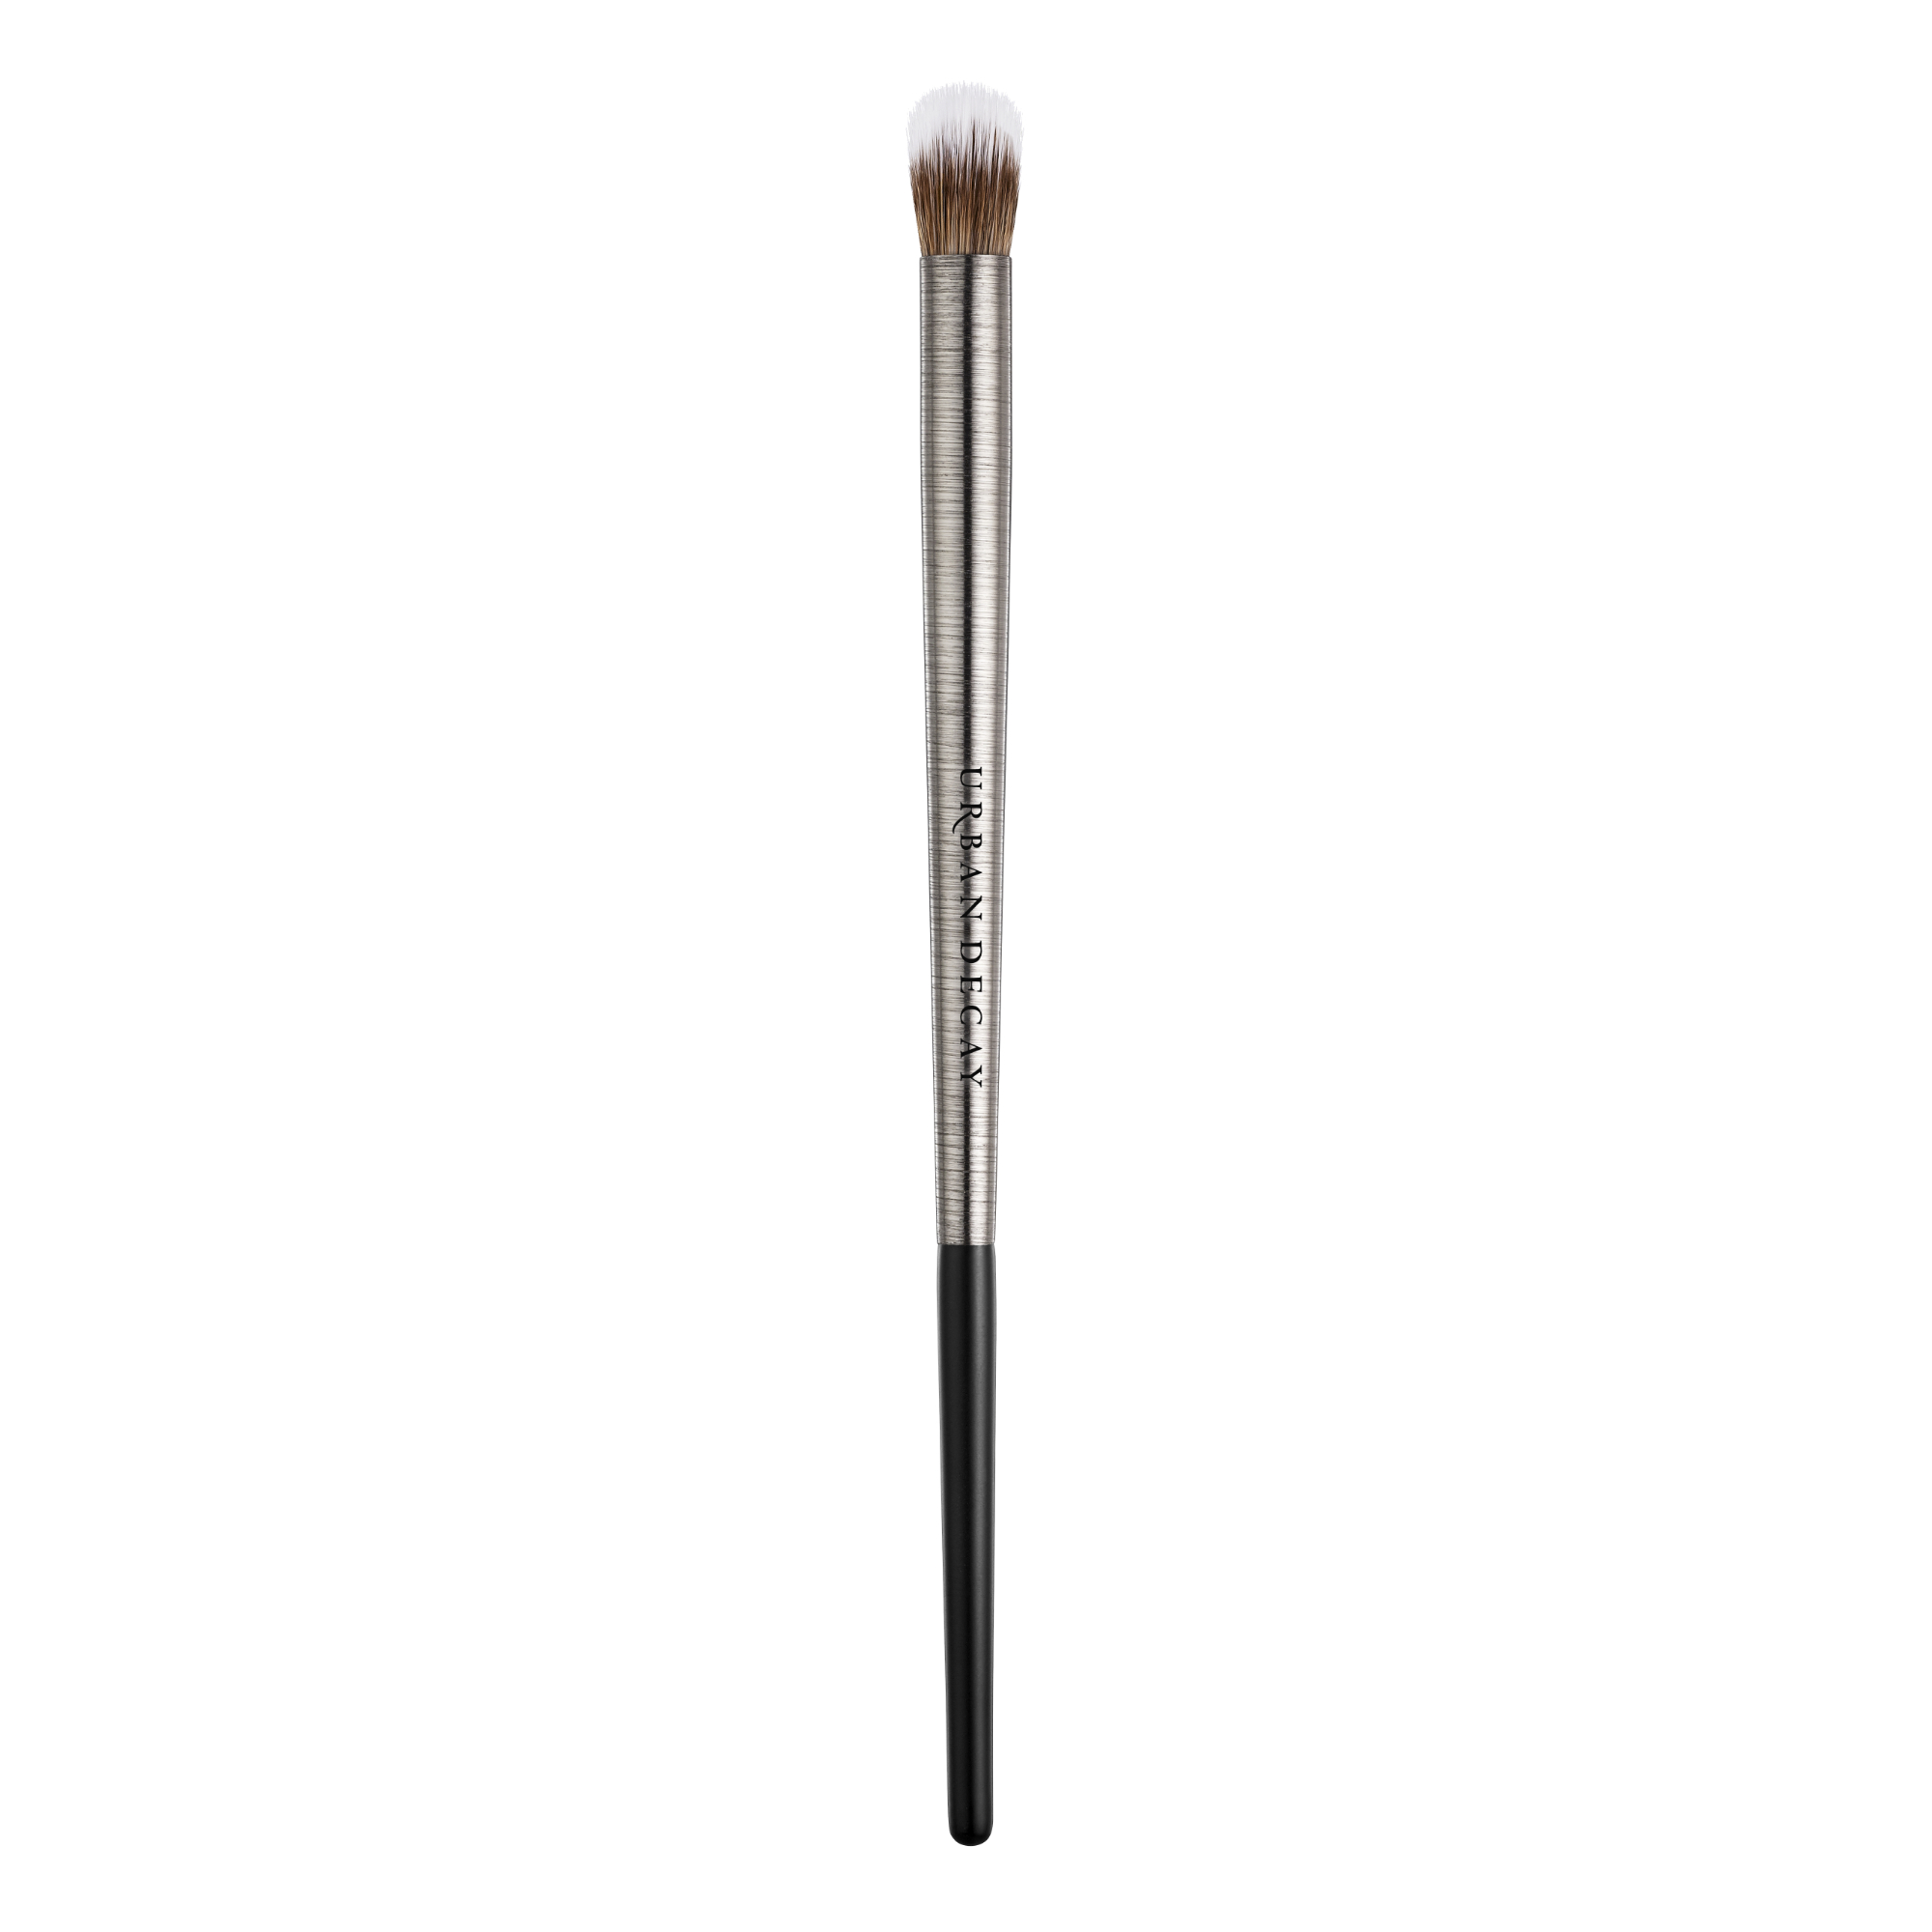 Urban Decay F112 Domed Concealer Brush